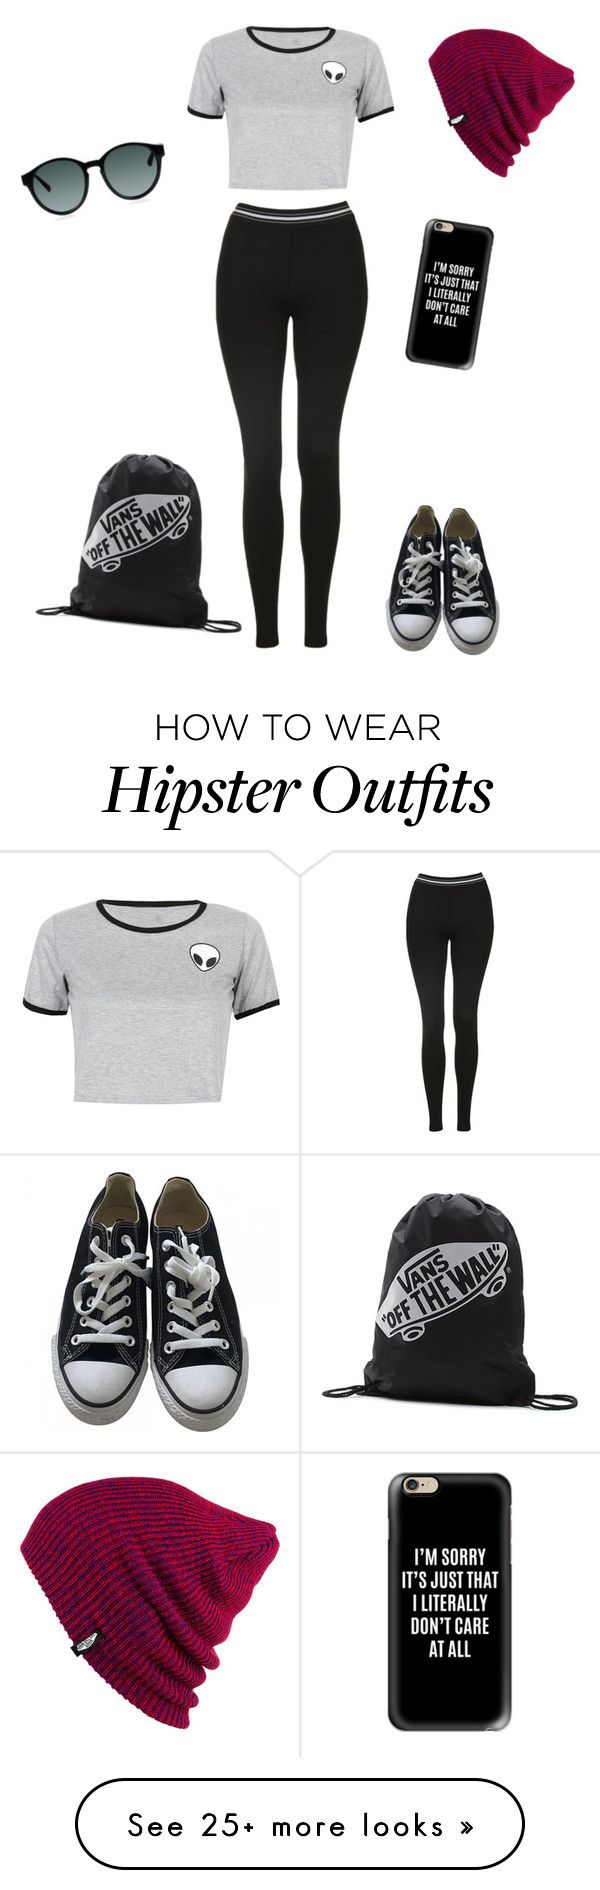 """pop punk hipster look #1"" by poppunkmess on Polyvore featuring WithChic, Topshop, Converse, Vans and Casetify"